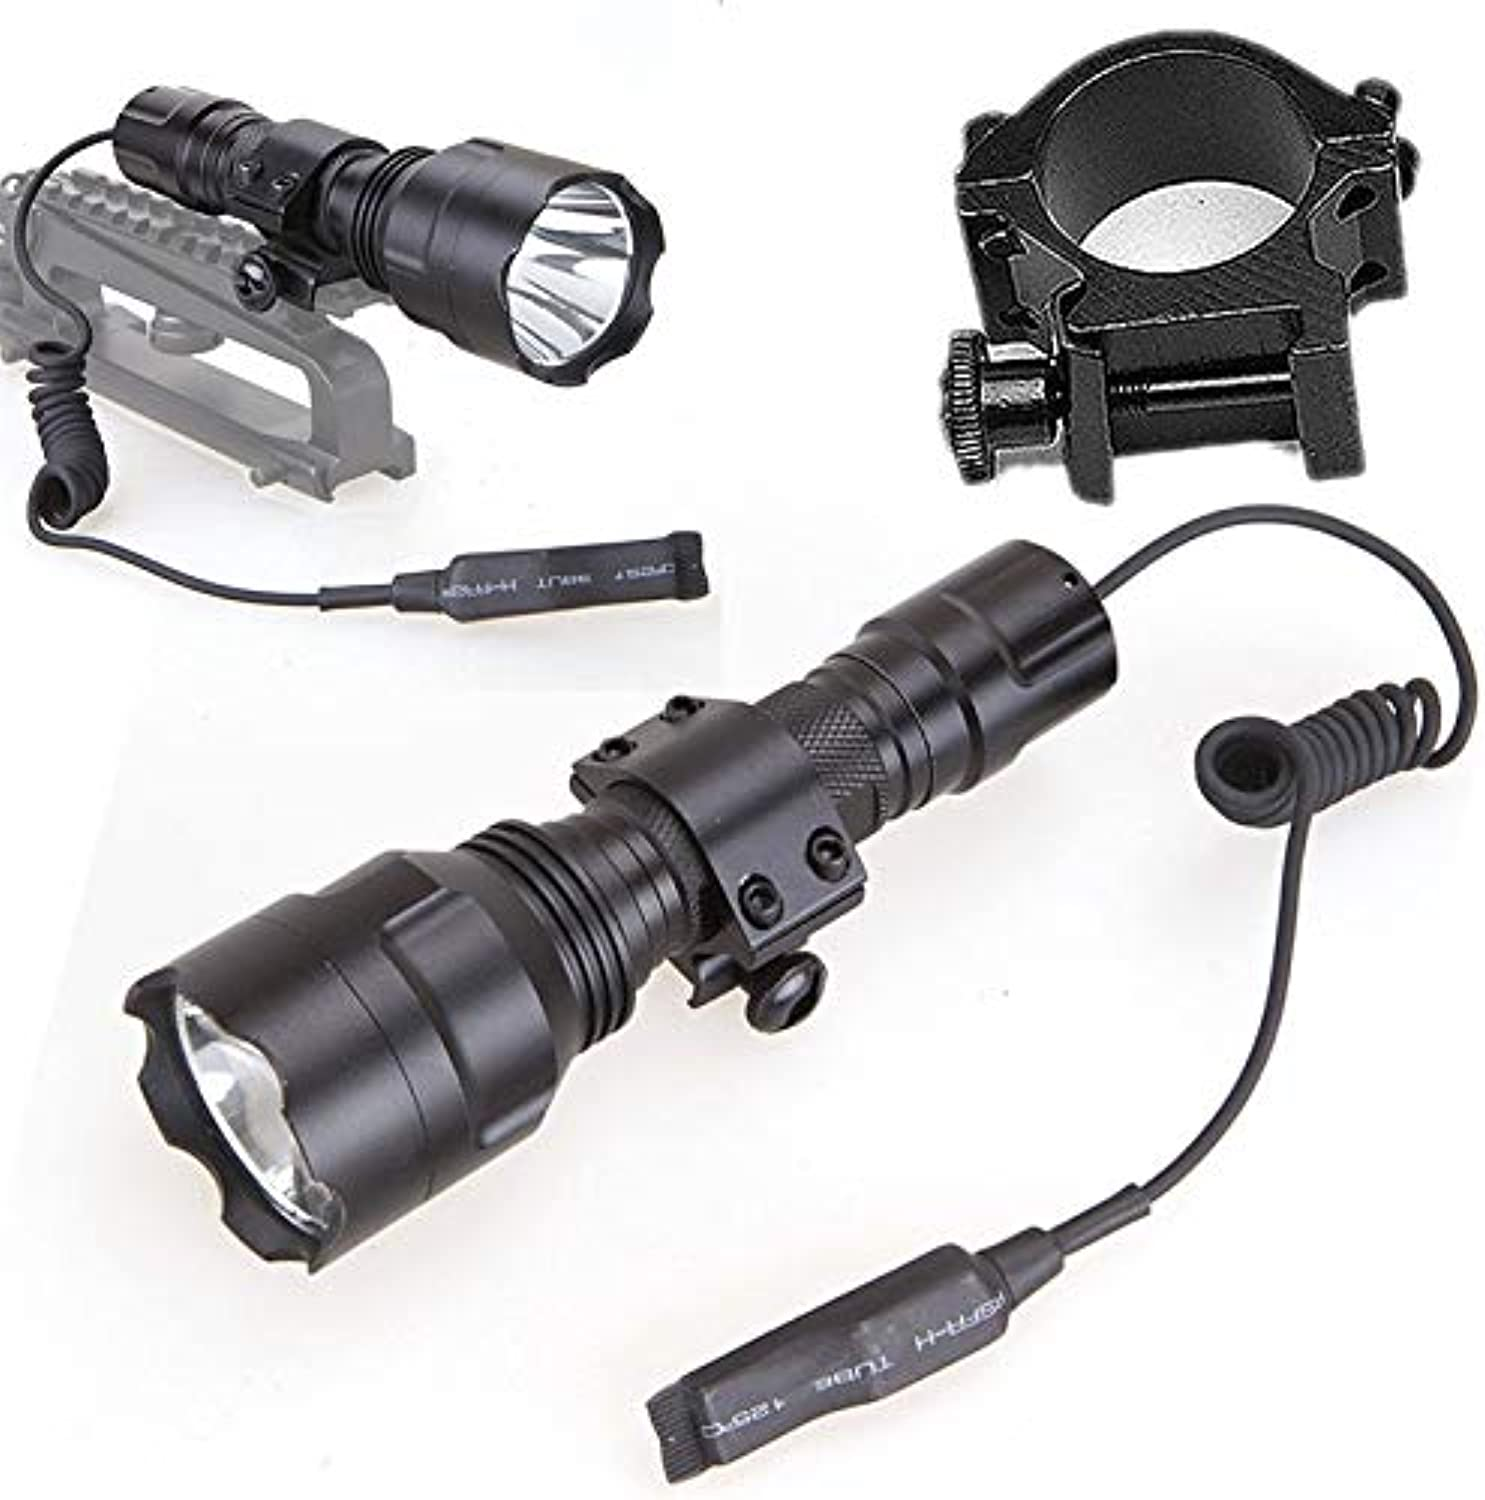 DaphotStore  New Hot Tactical 600LM T6 LED Flashlight Hunting Torch for Outdoor Lamp with 20MM Ring Mount Remote Pressure Switch